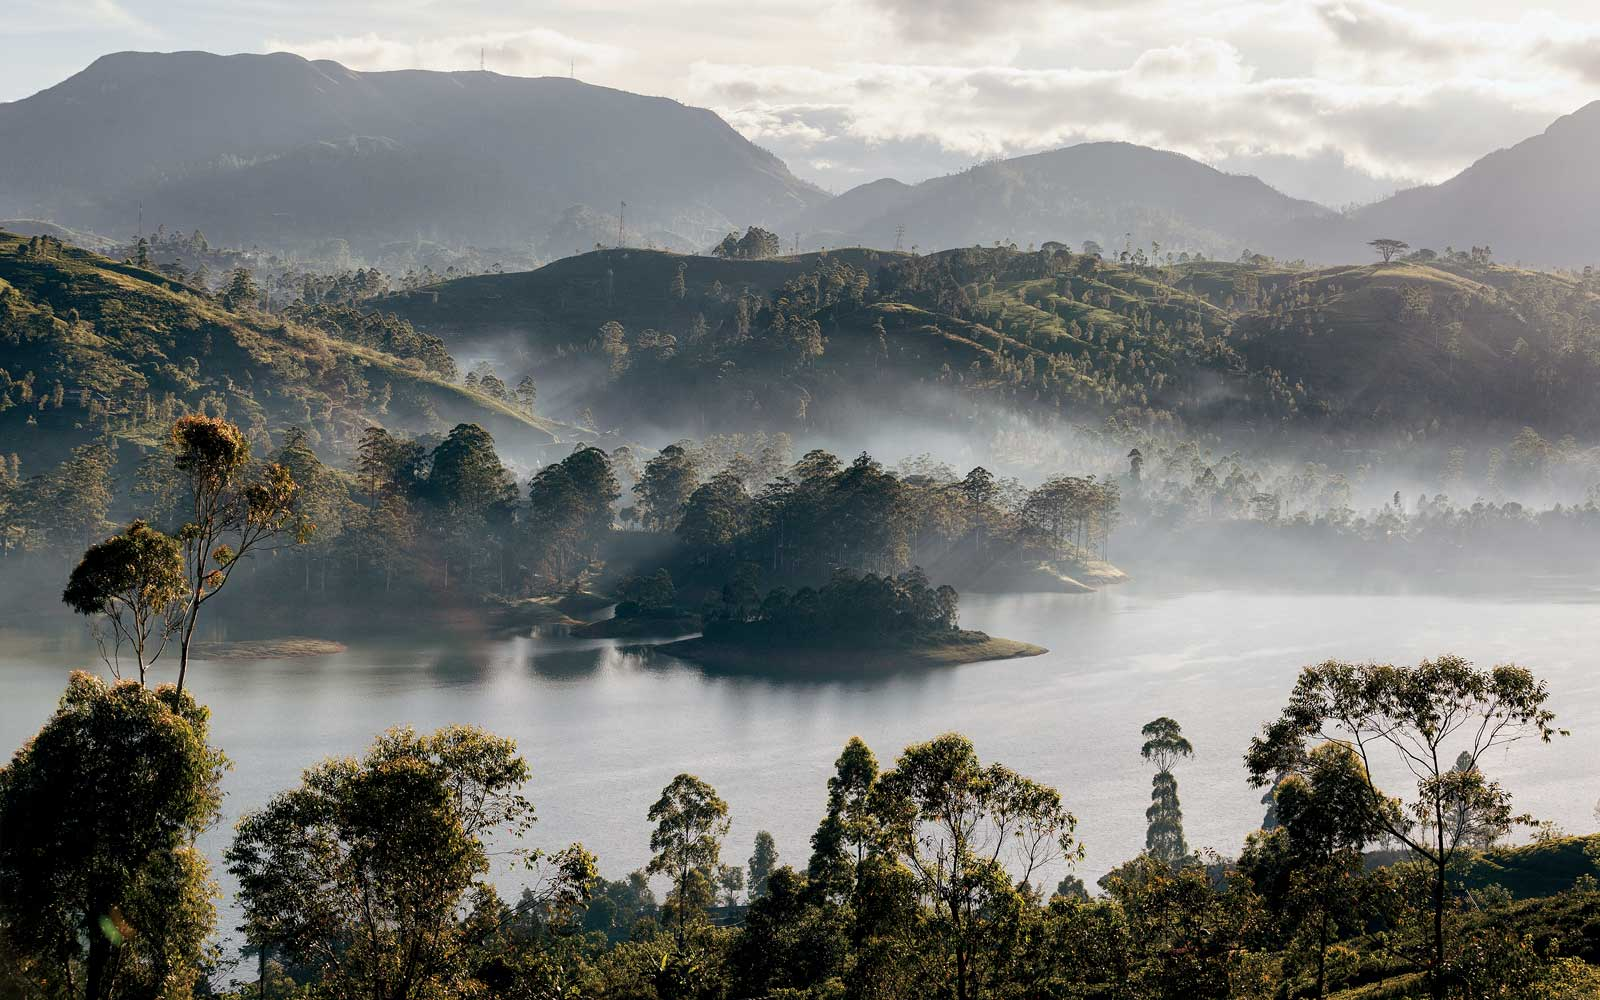 Morning at Castlereagh Reservoir, in Sri Lanka's tea country